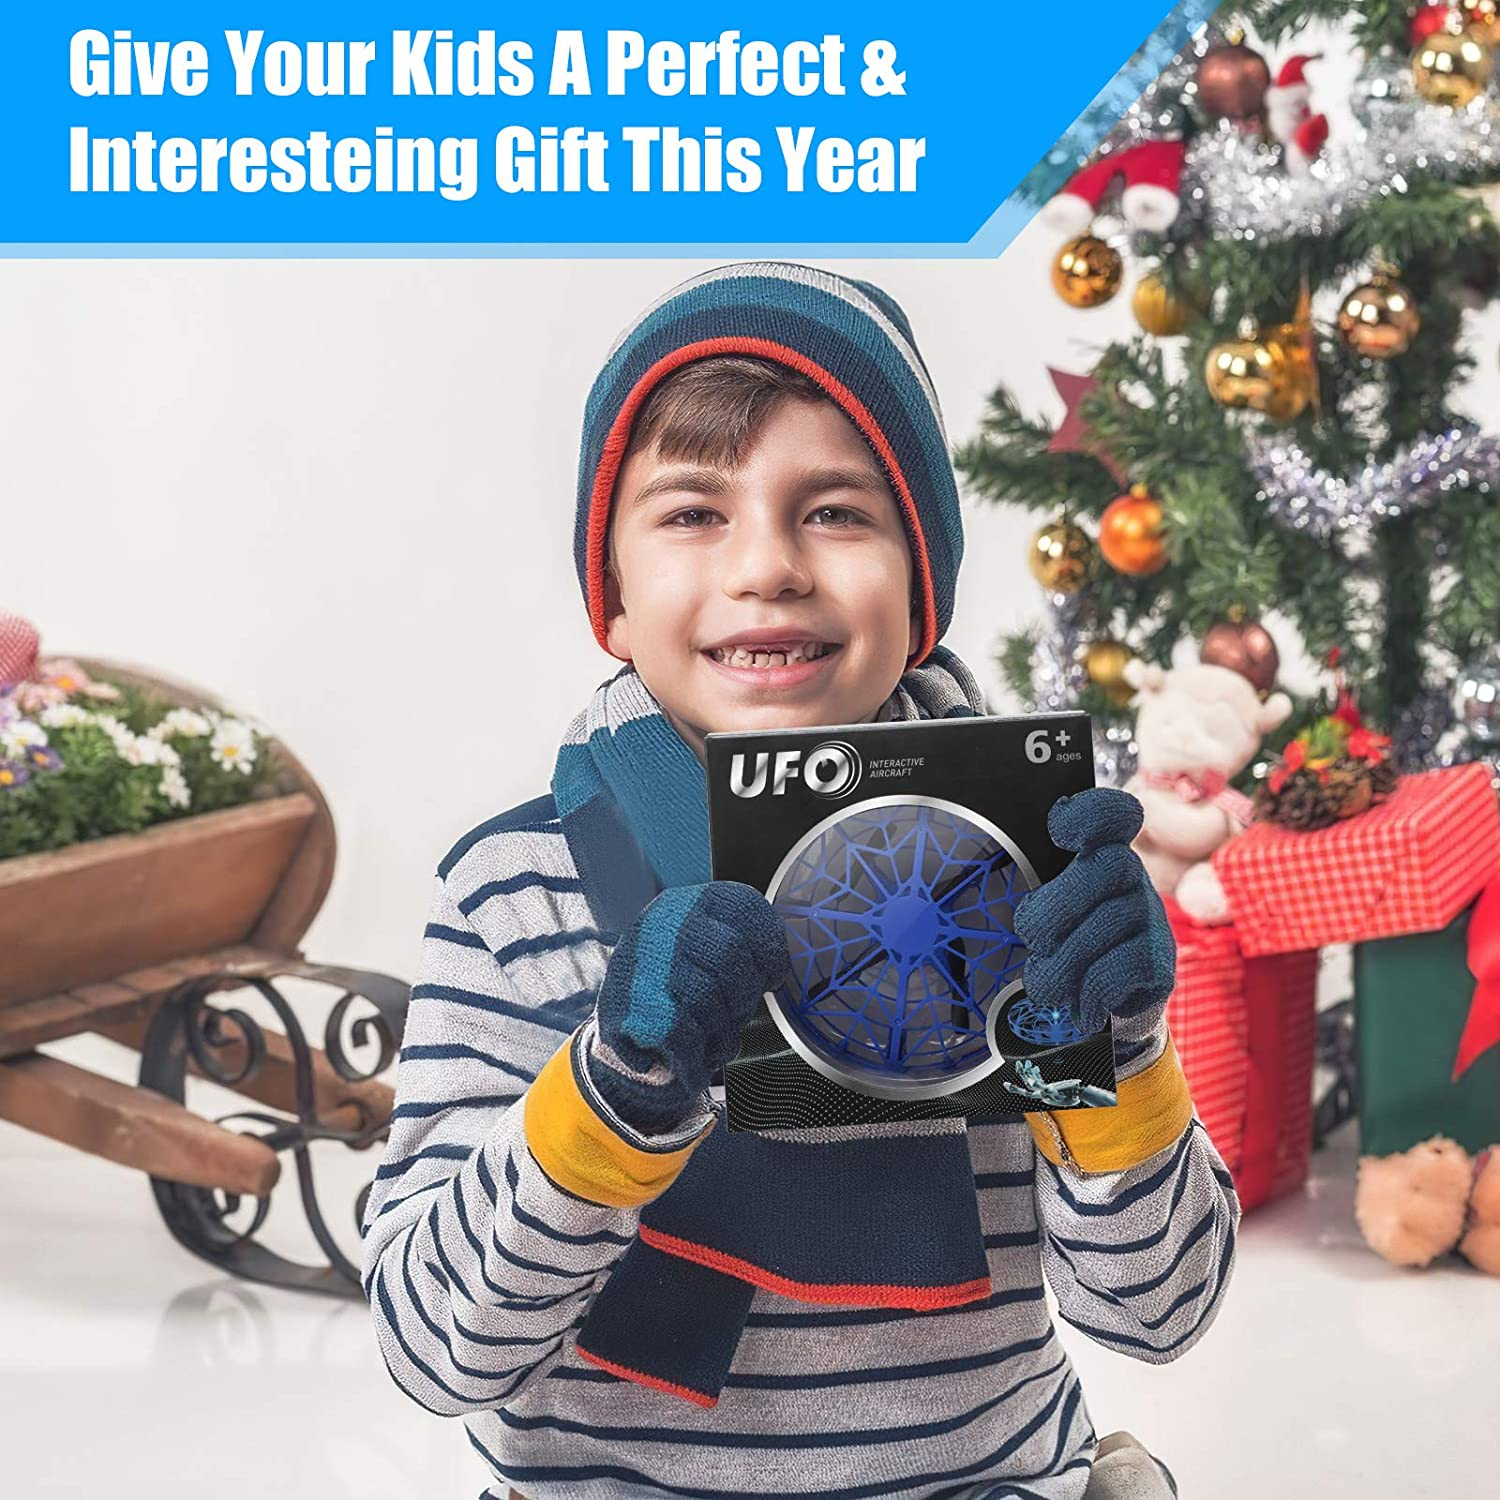 Infrared Sensor//USB Rechargeable One Key Take Off//Landing Indoor 360 Rotating Hand Operated Mini Drone for Kids LED UFO Drone Kids Toys Christmas Birthday Gifts Boys//Girls for Age 6 7 8 9 10